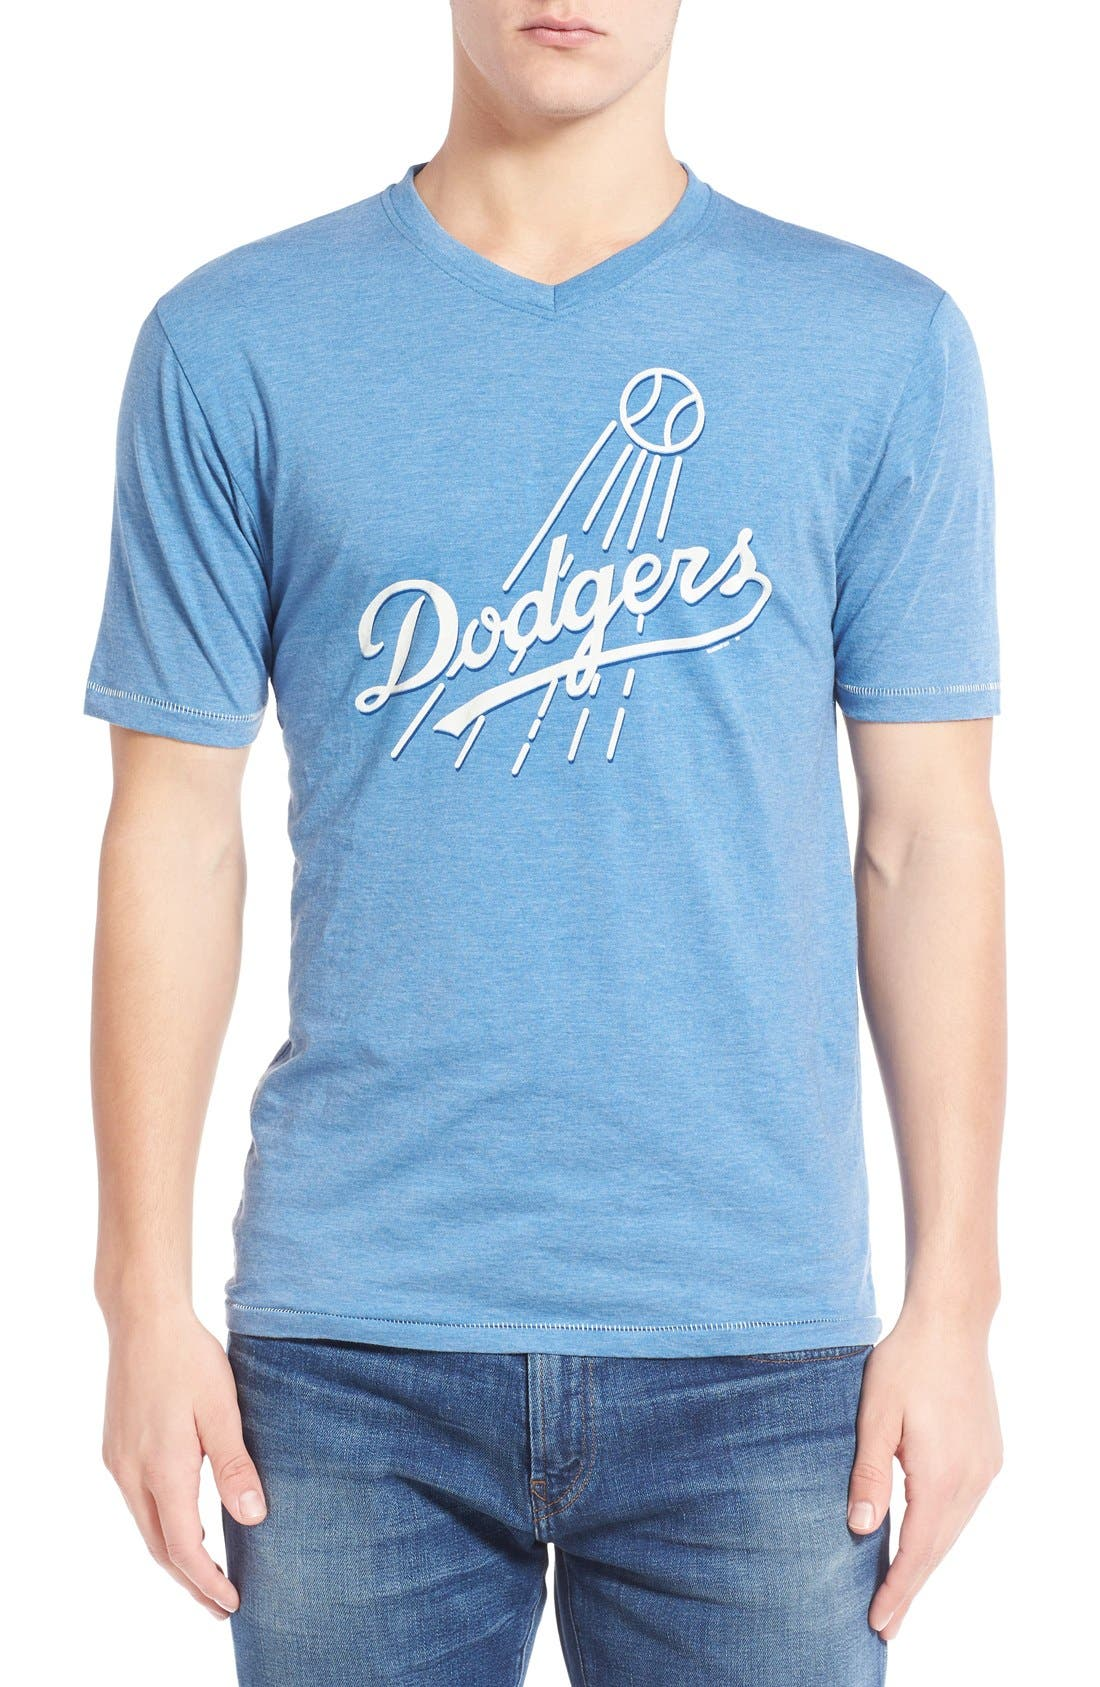 'Los Angeles Dodgers - Calumet' Graphic V-Neck T-Shirt,                             Main thumbnail 1, color,                             450